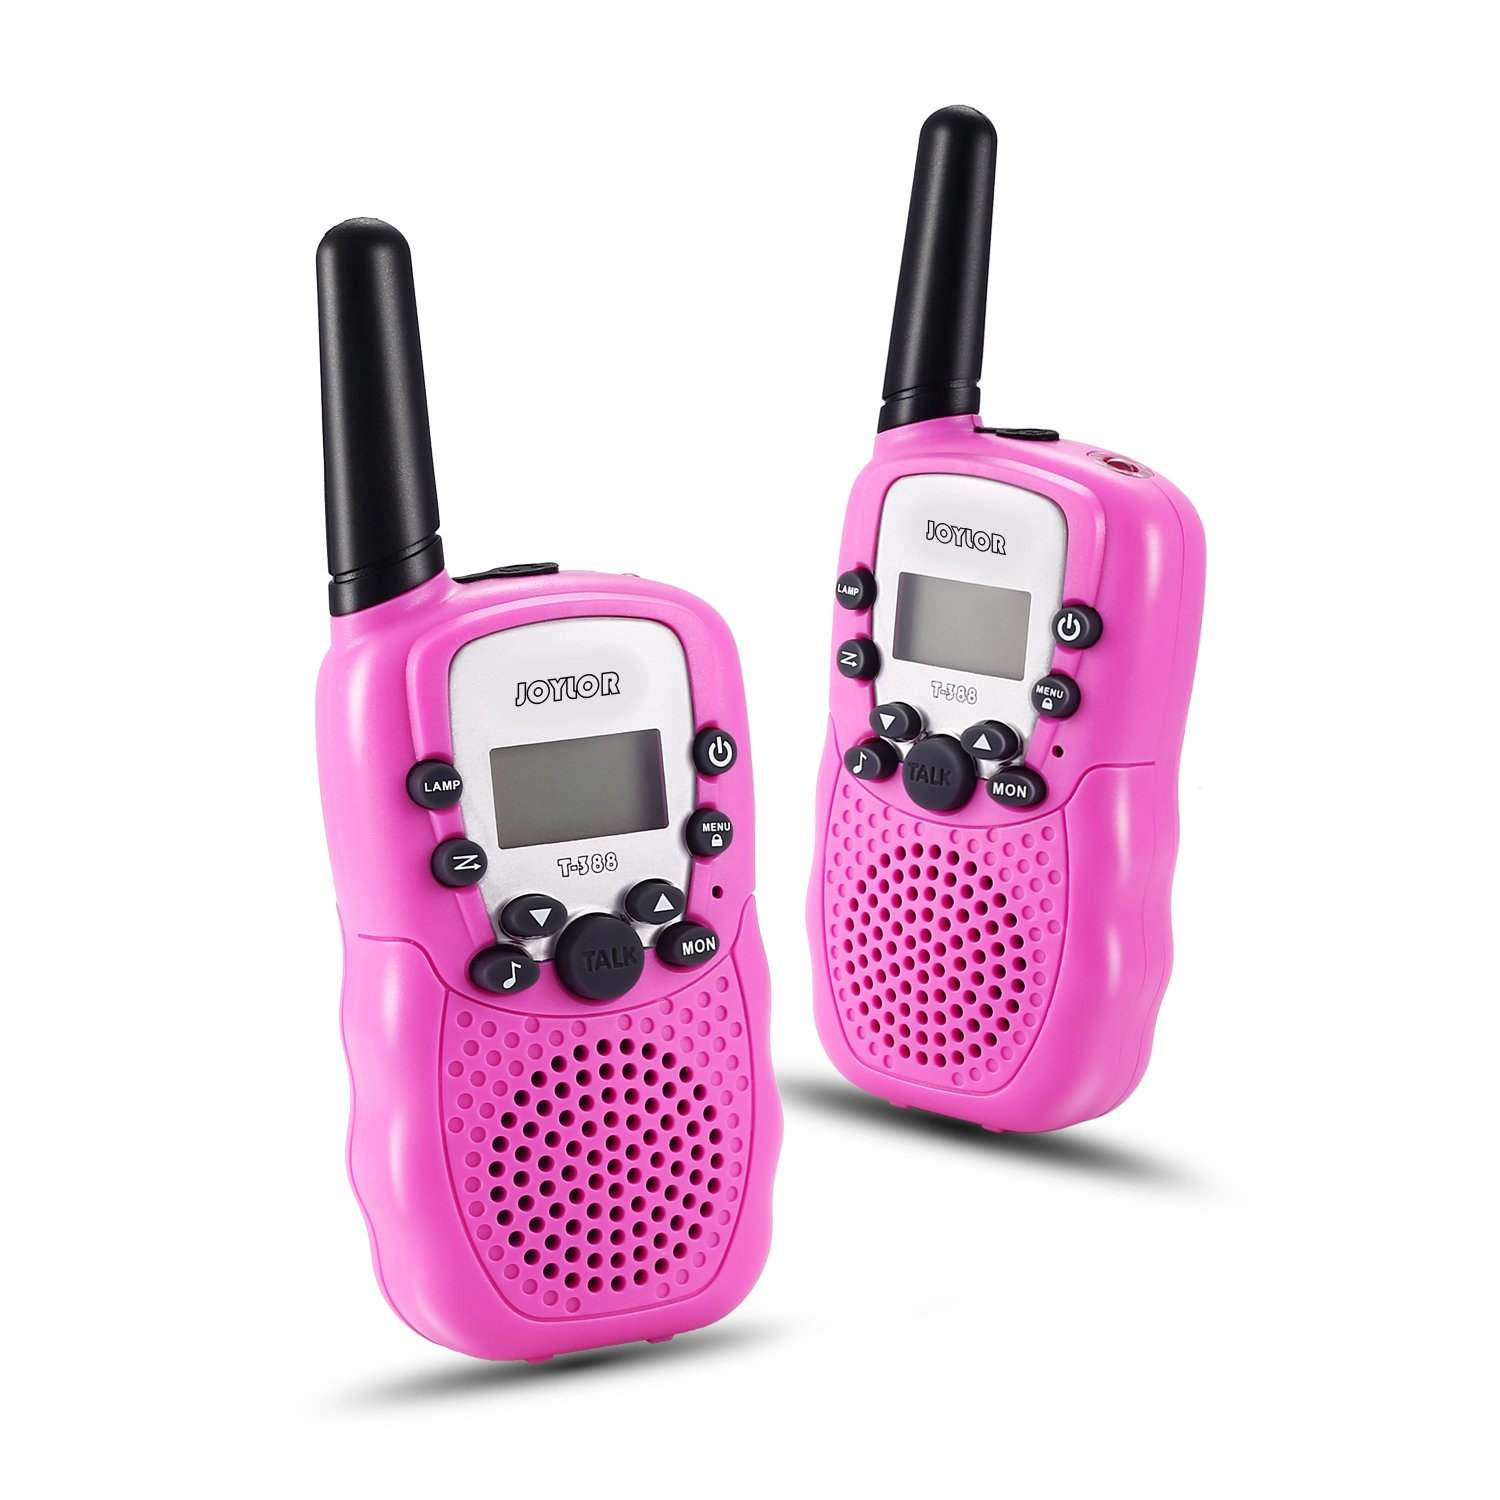 Joylor Durable Walkie Talkies Twin Toy for kids,Easy To Use and Kids Friendly 2-Way Radio 3-5KM Range Interphone Outdoor Camping Hiking - Pink